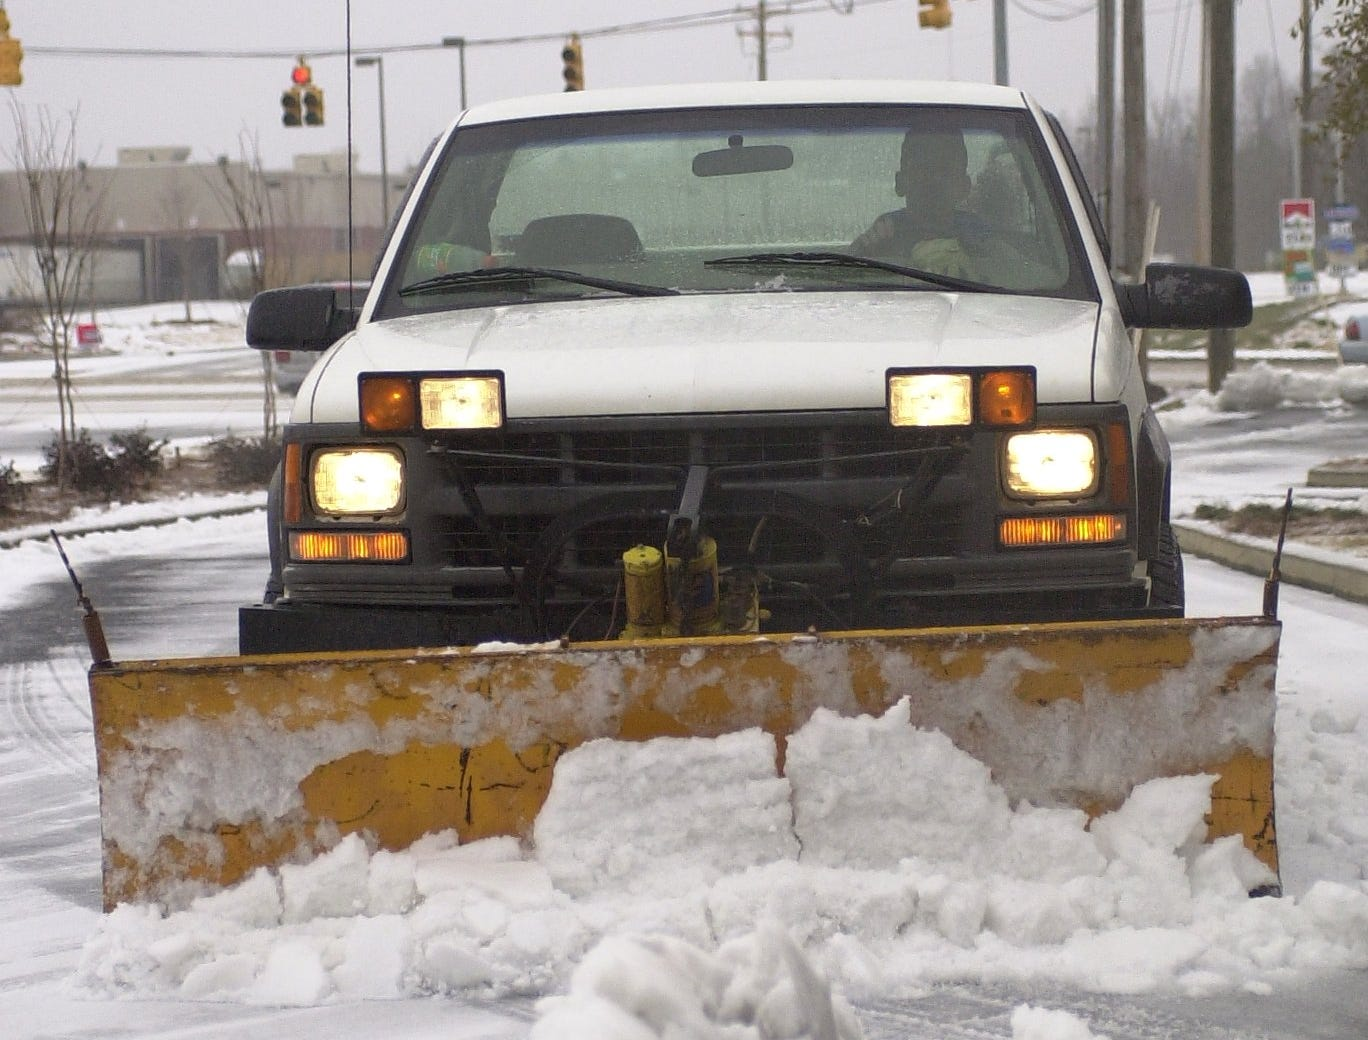 Chris D'Auria guides his pickup with snow a plow attached as he clears the snow and ice covered parking lot of a bank on Woodruff Rd January 29,2005.